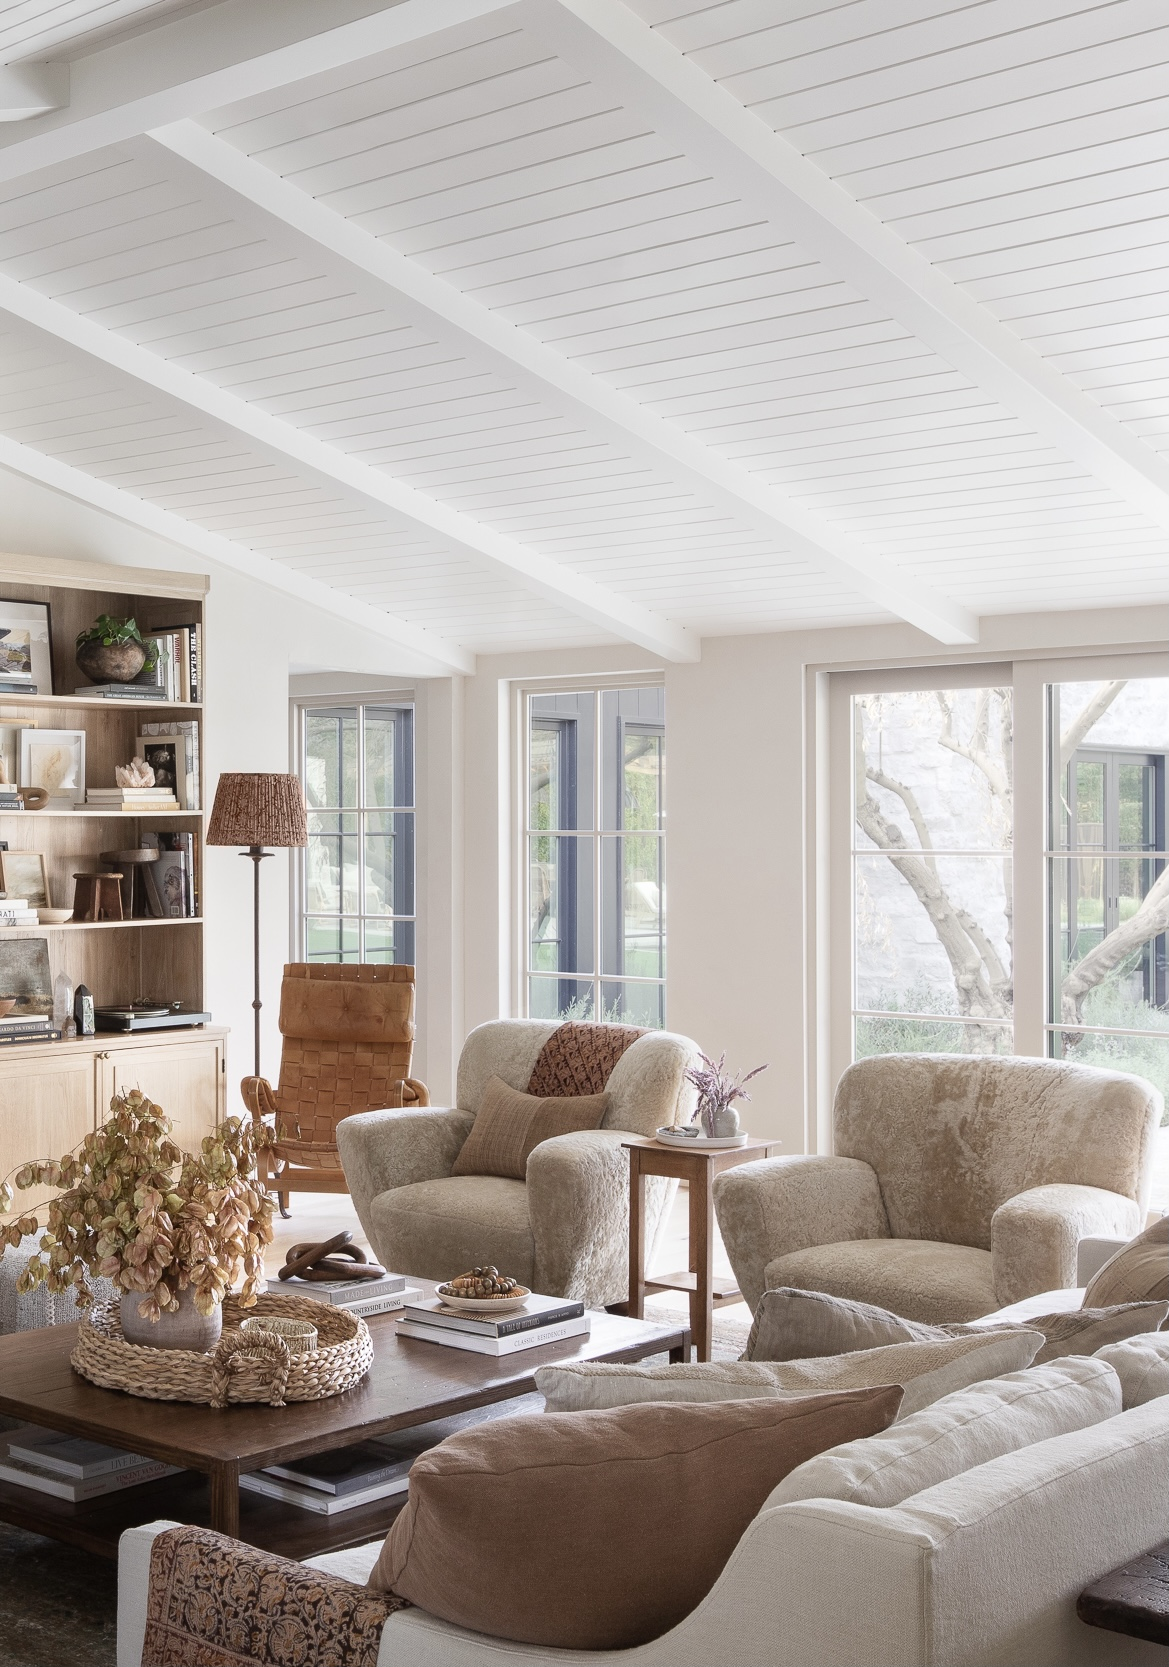 2021 Design and Decor Trends I'm loving: comfortable, relaxed easy care seating in the living room - Amber Interior Design